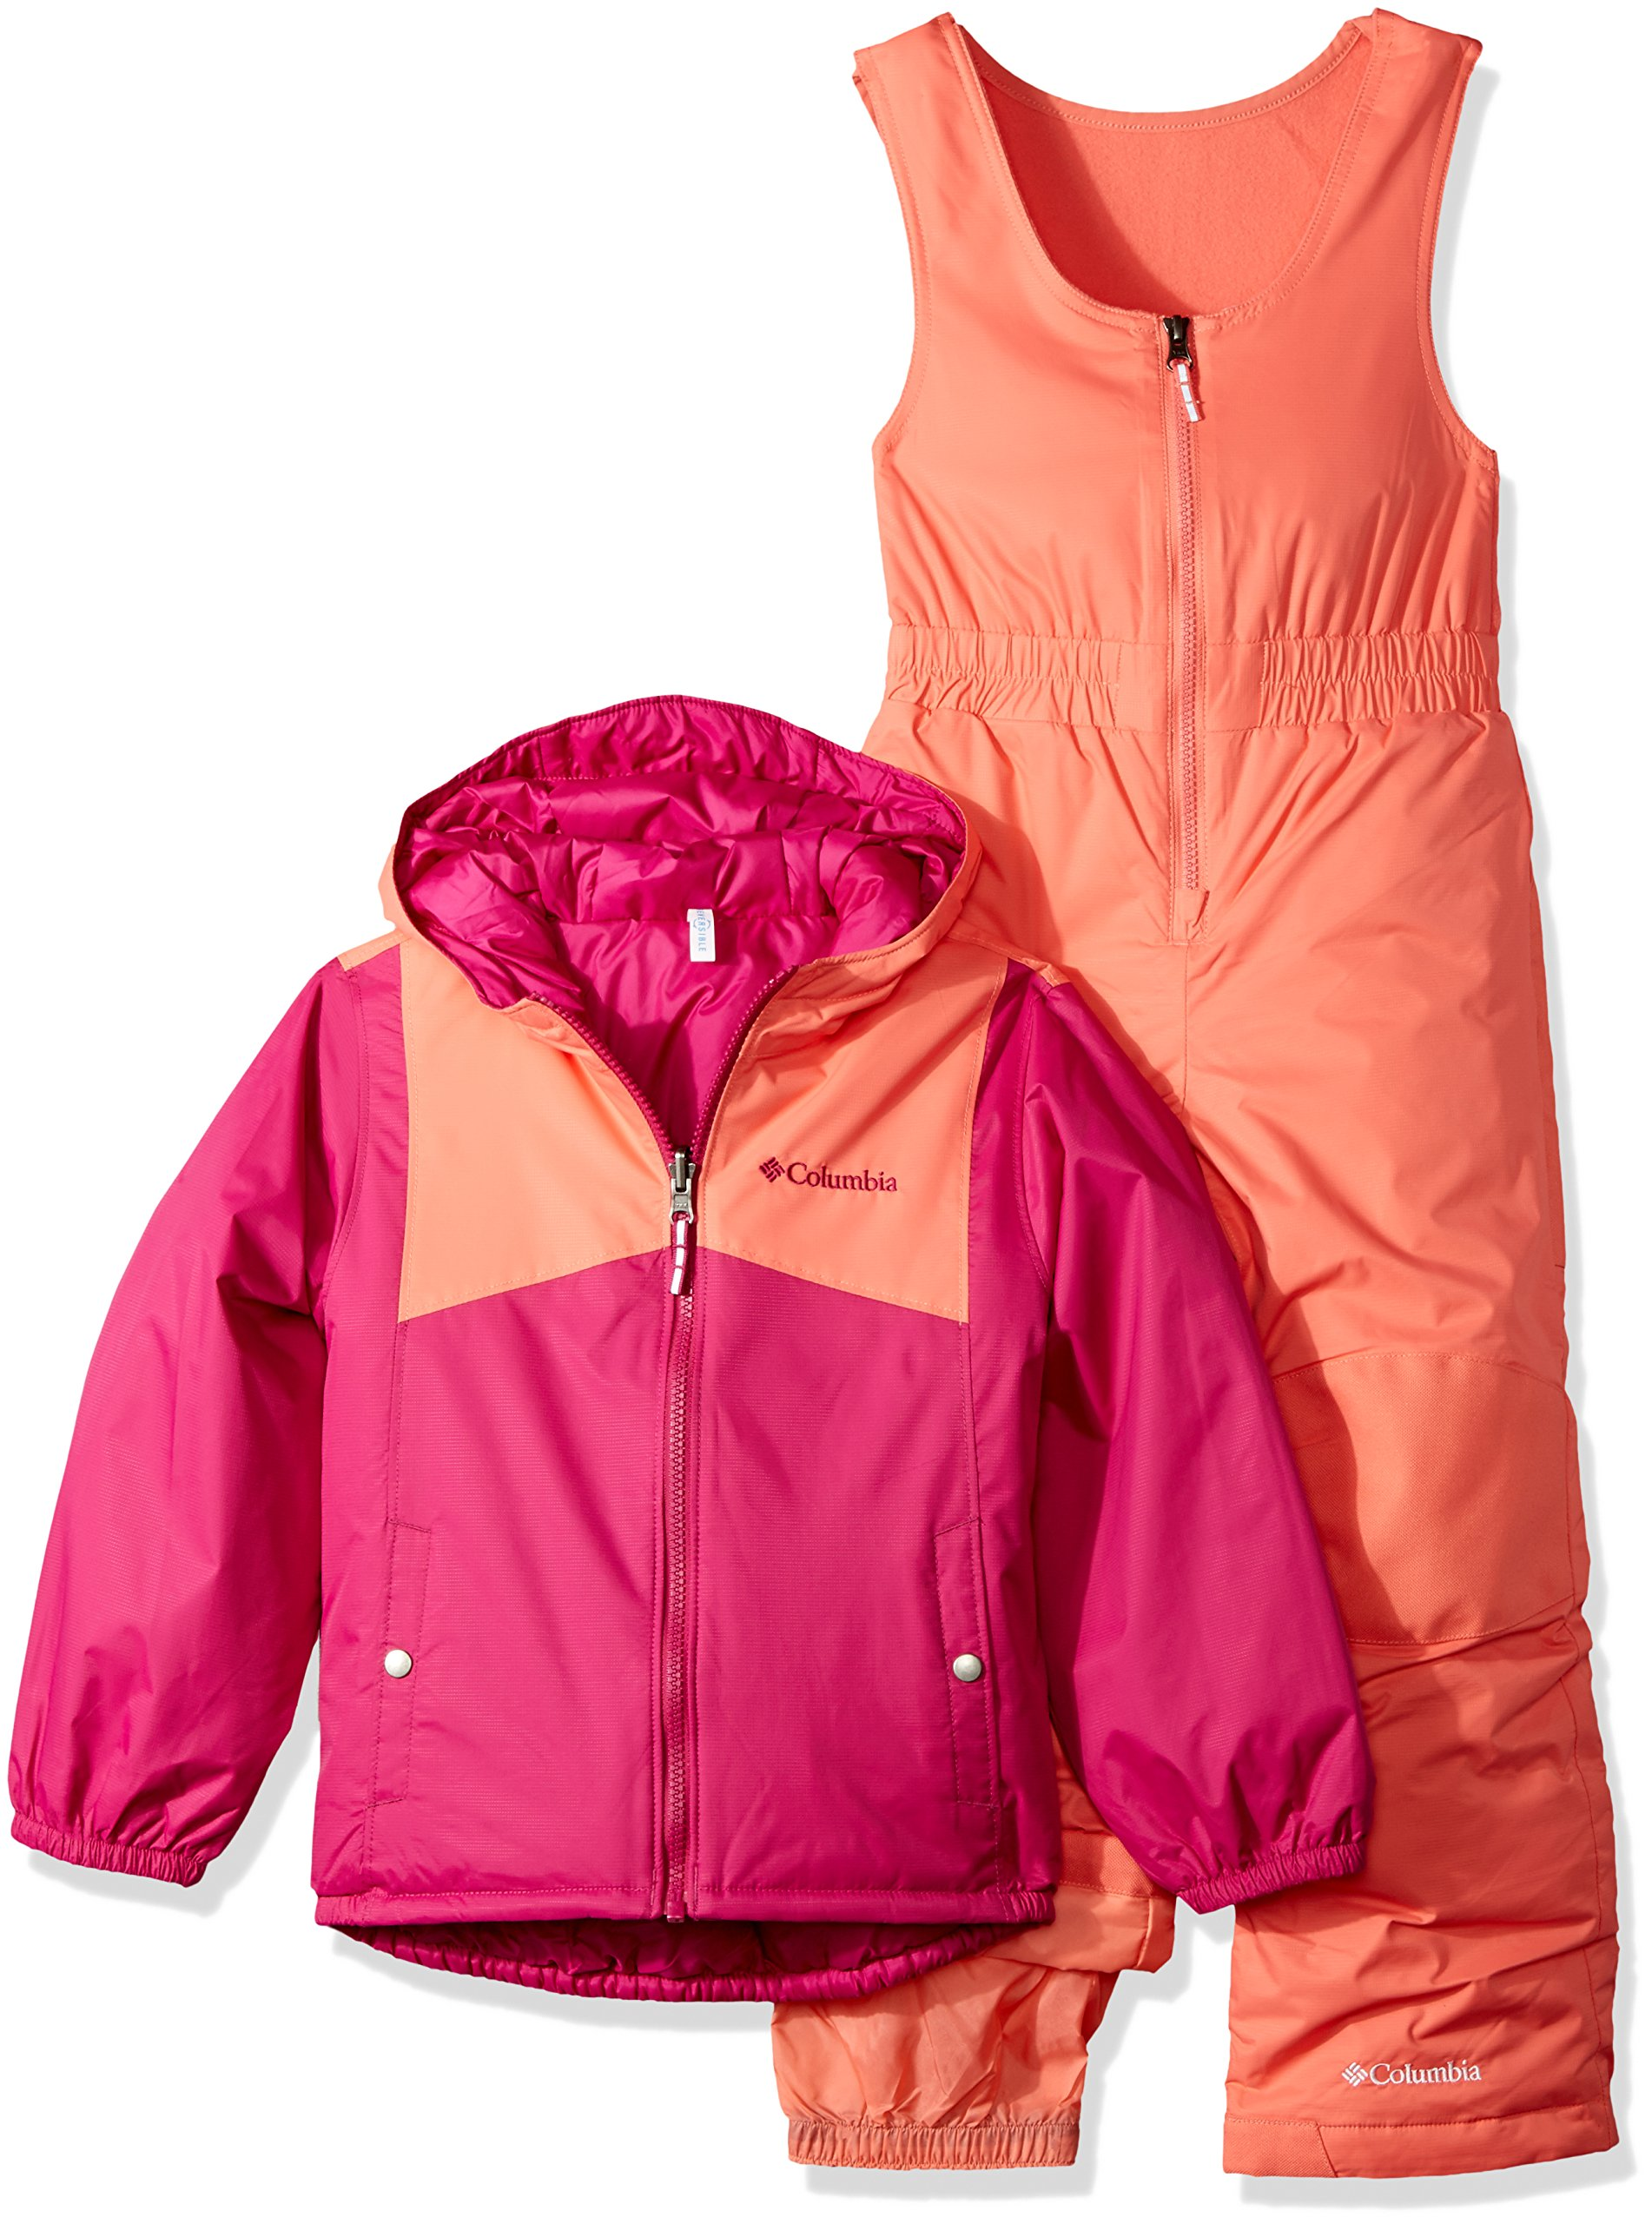 Columbia Girls' Toddler Double Flake Set, Deep Blush, Hot Coral, 3T by Columbia